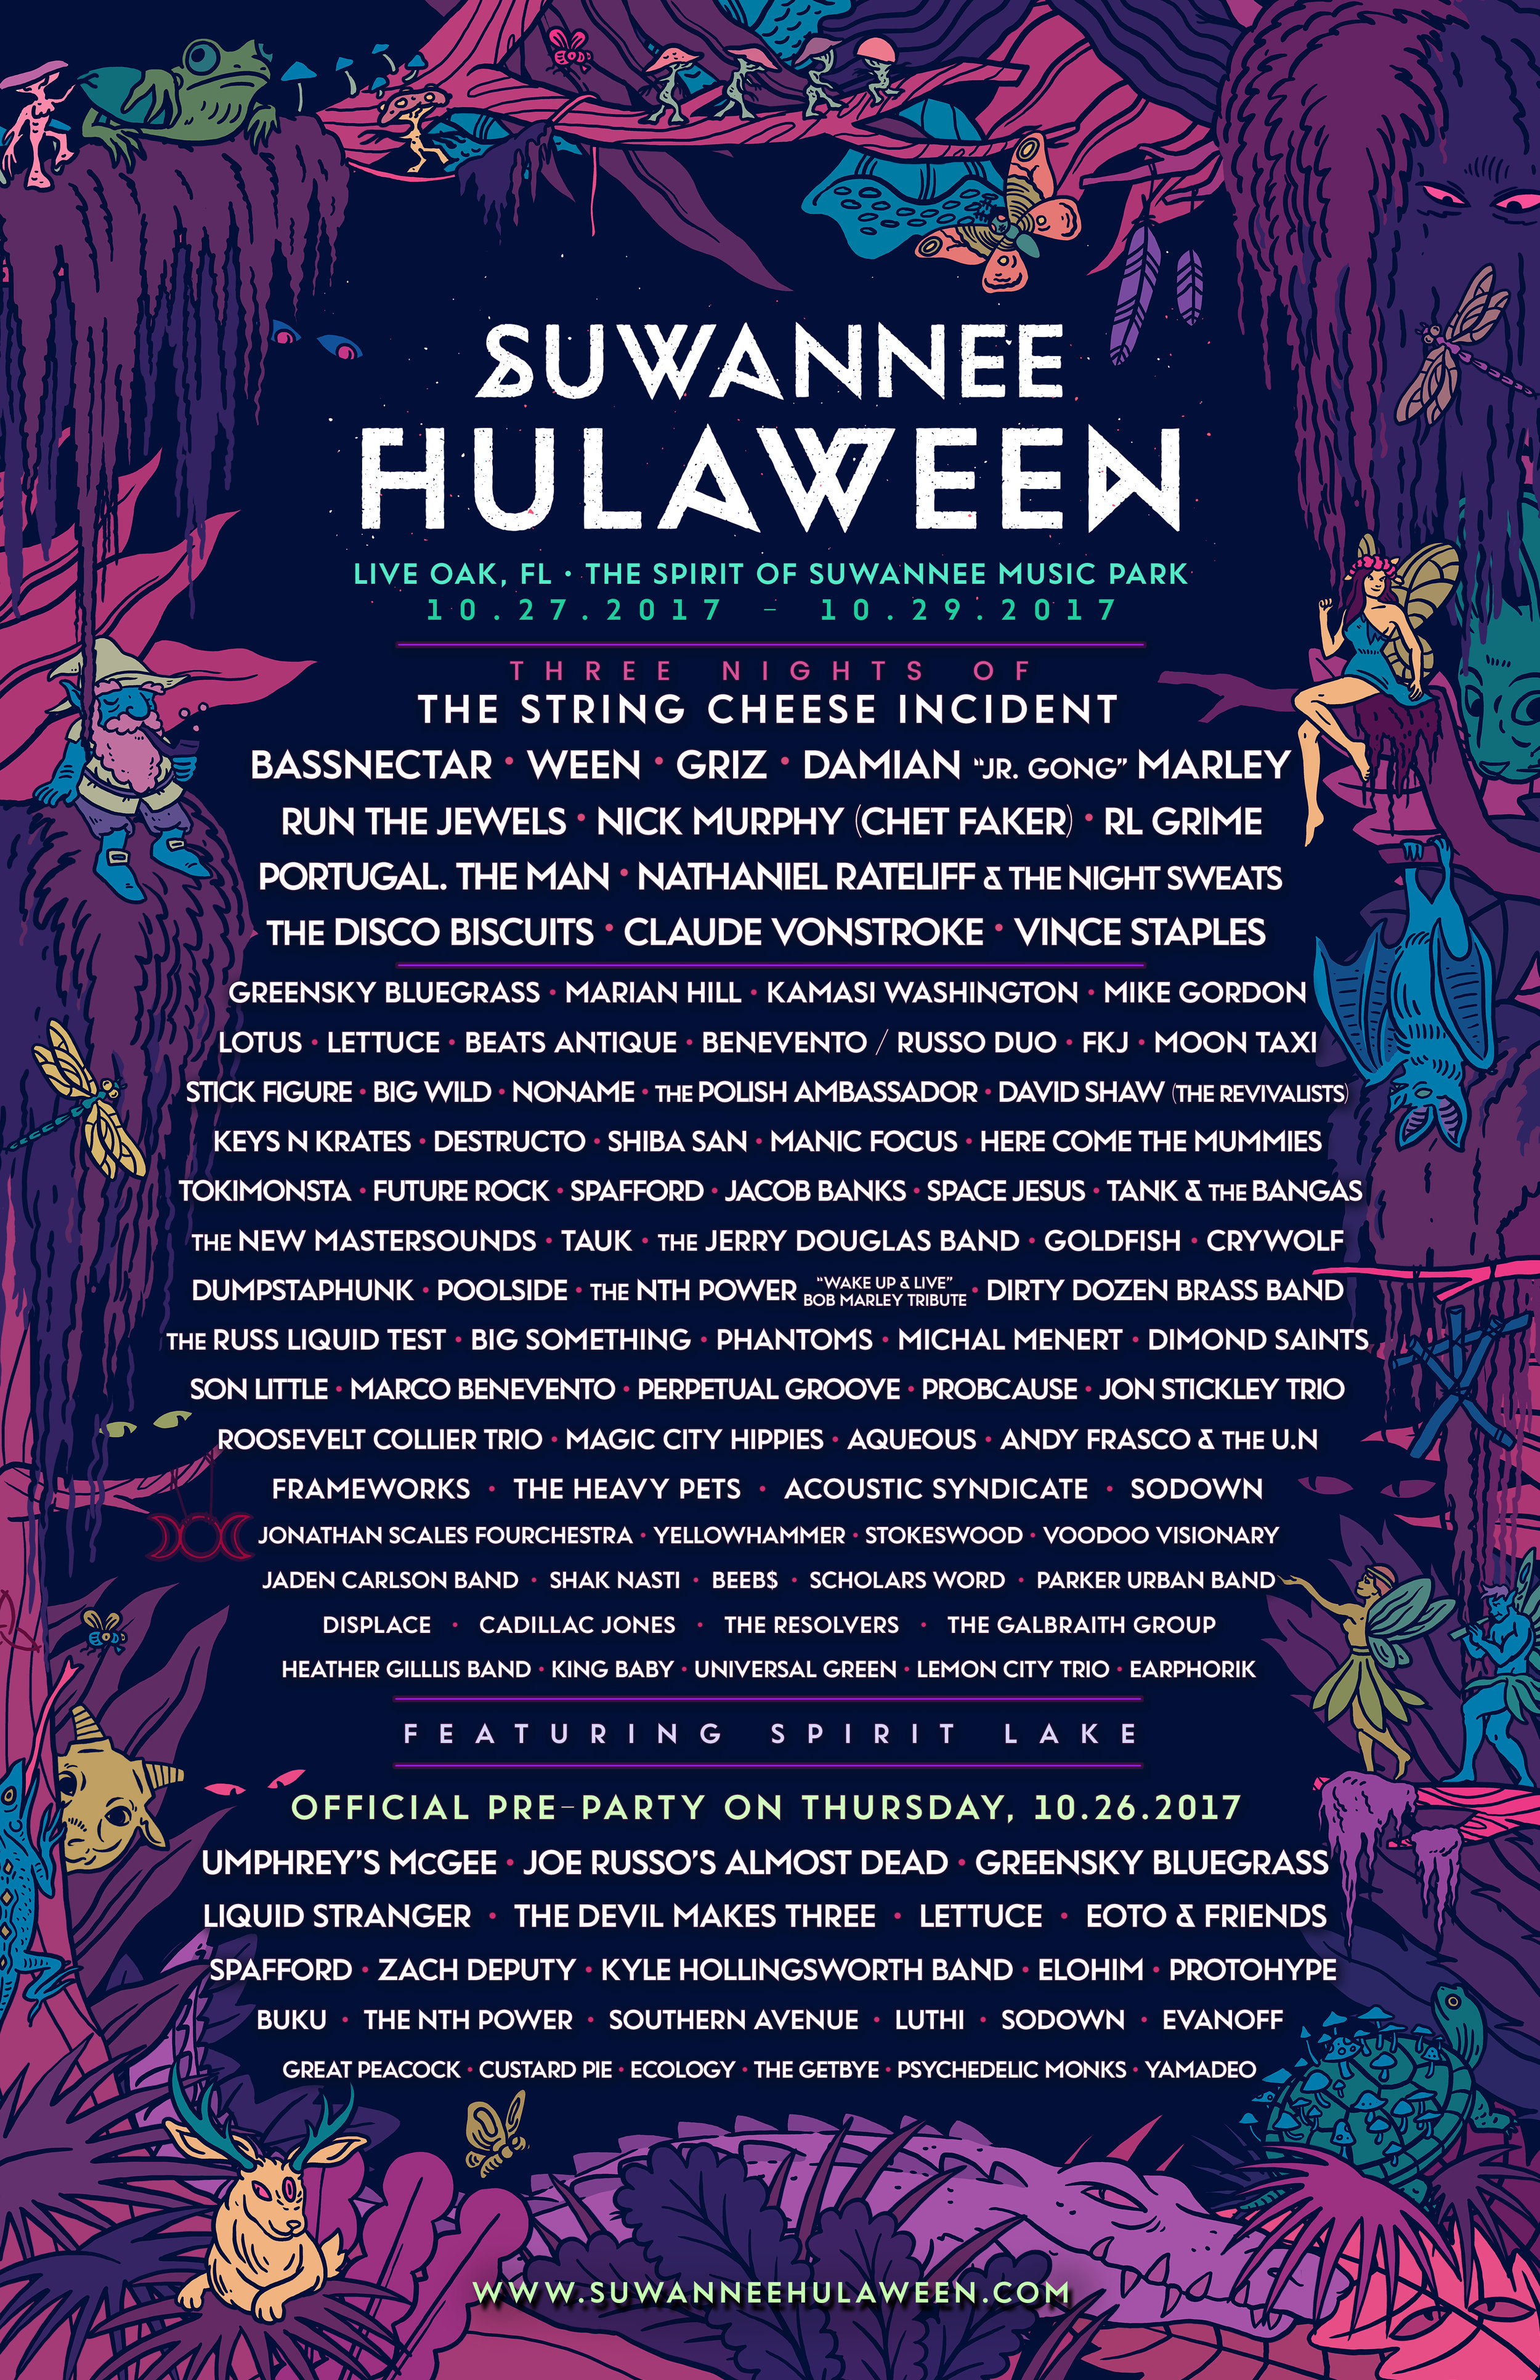 Suwannee Hulaween Drops Wicked Phase 2 Lineup